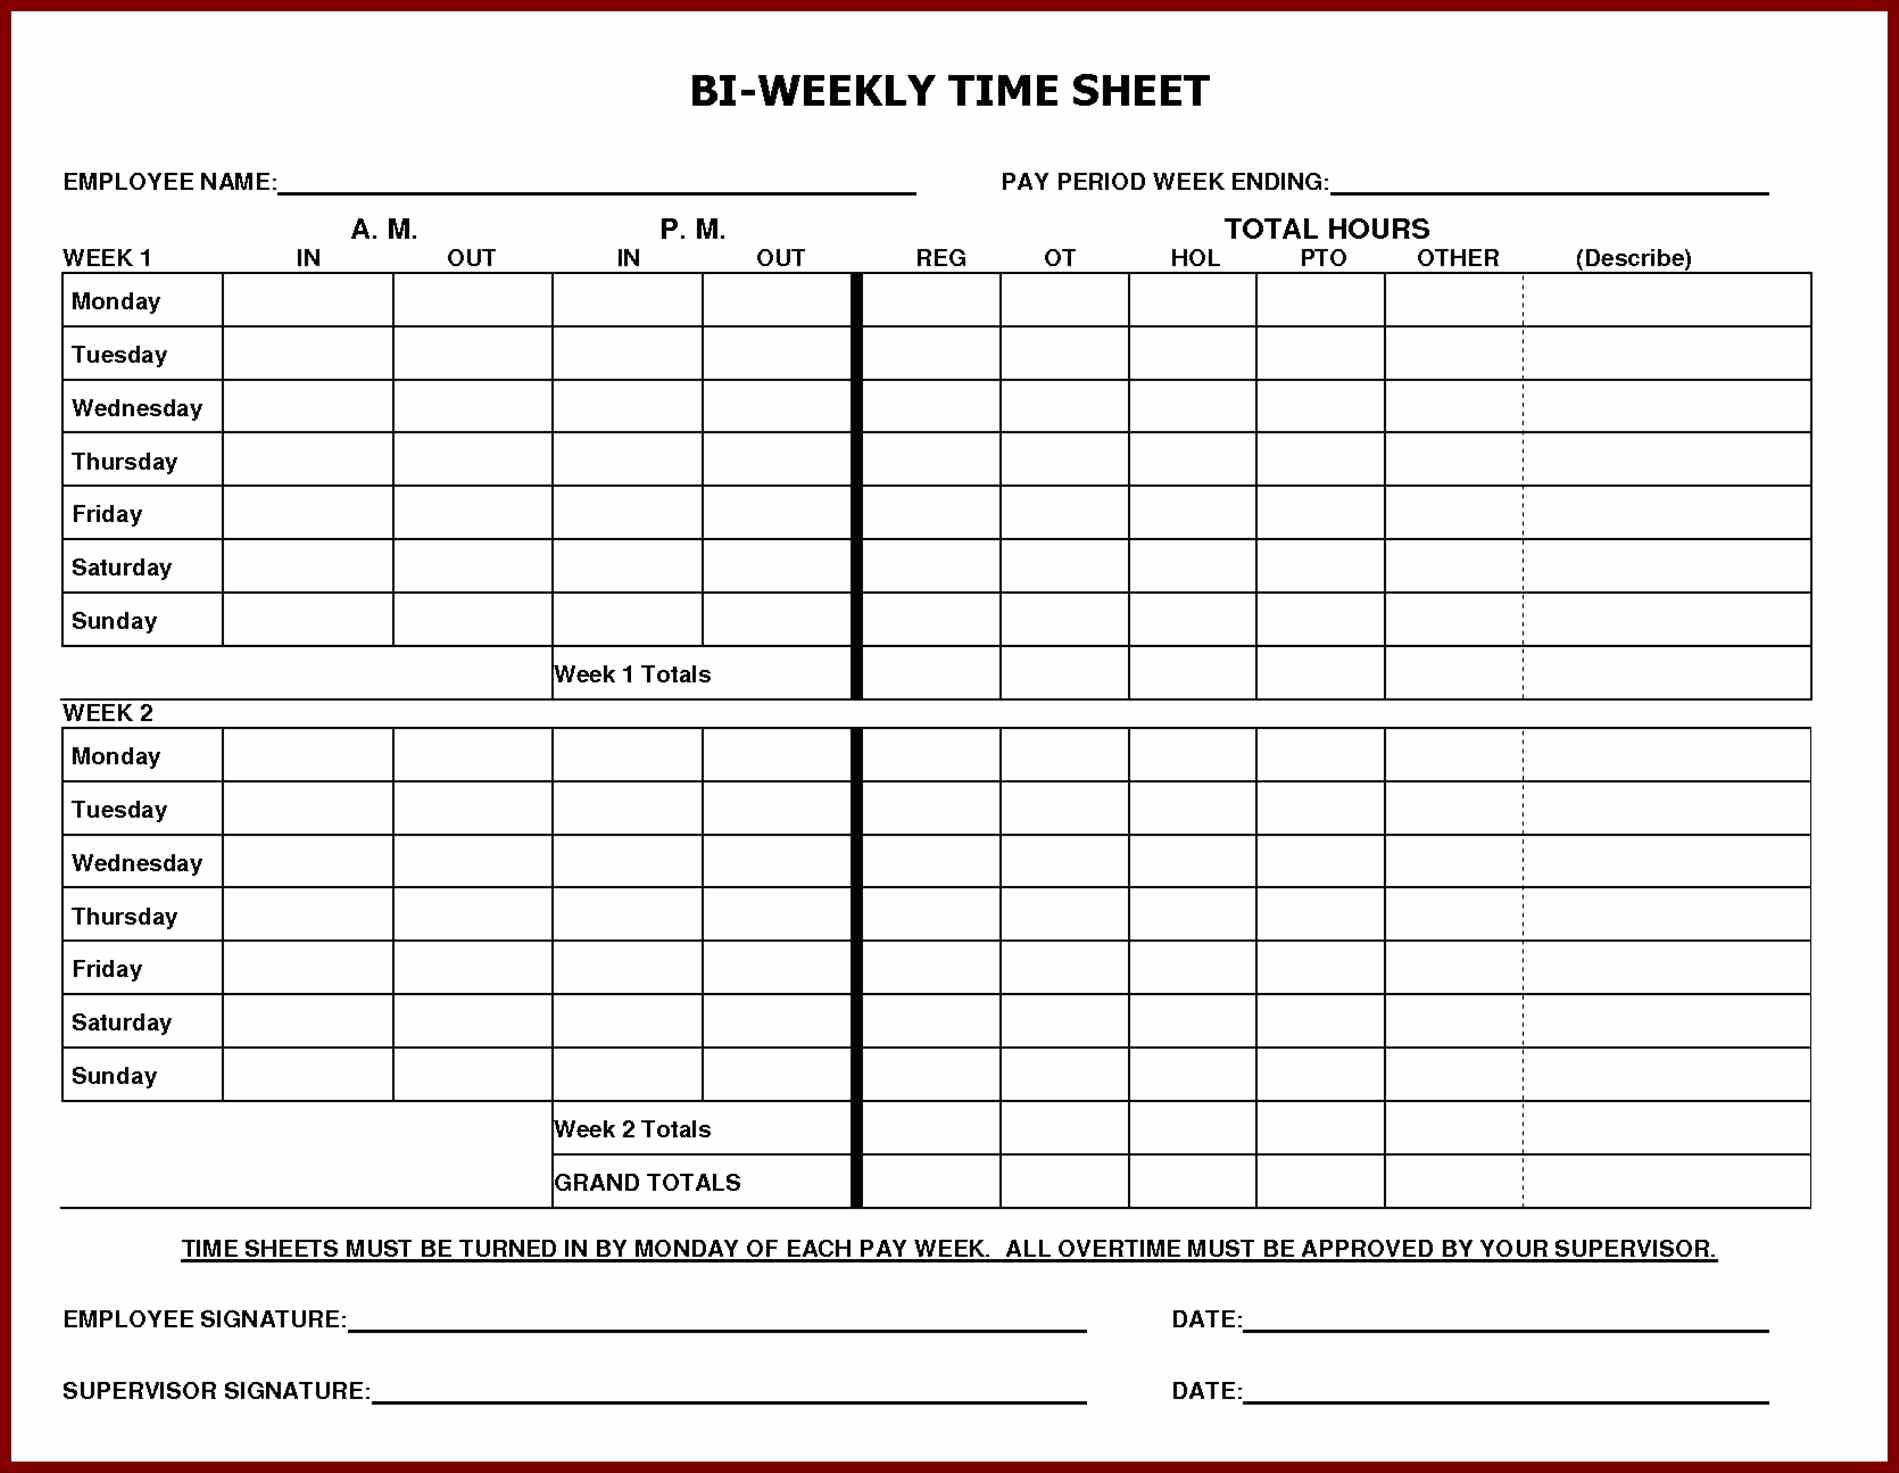 Free Printable Time Sheets Pdf New Daily Time Sheet Printable Printable 360 Degree